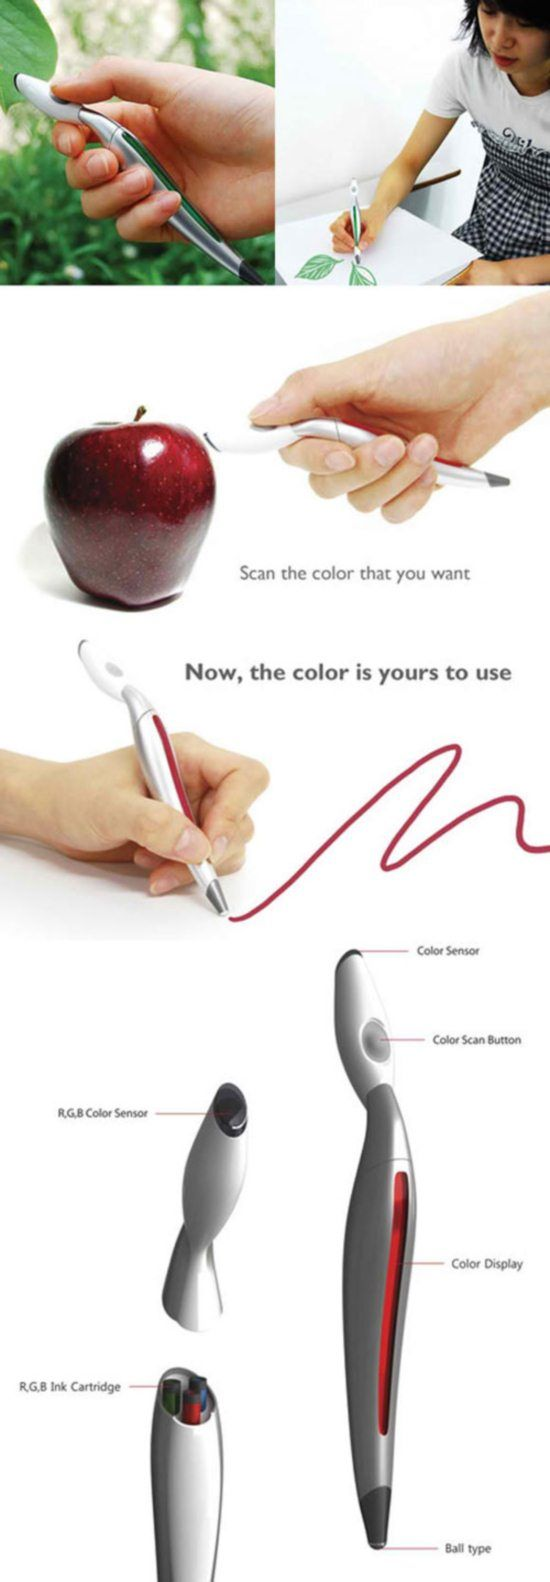 #4 Color Scanning Pen For more visit: https://www.facebook.com/WorkBench-468175990014381/?ref=stream